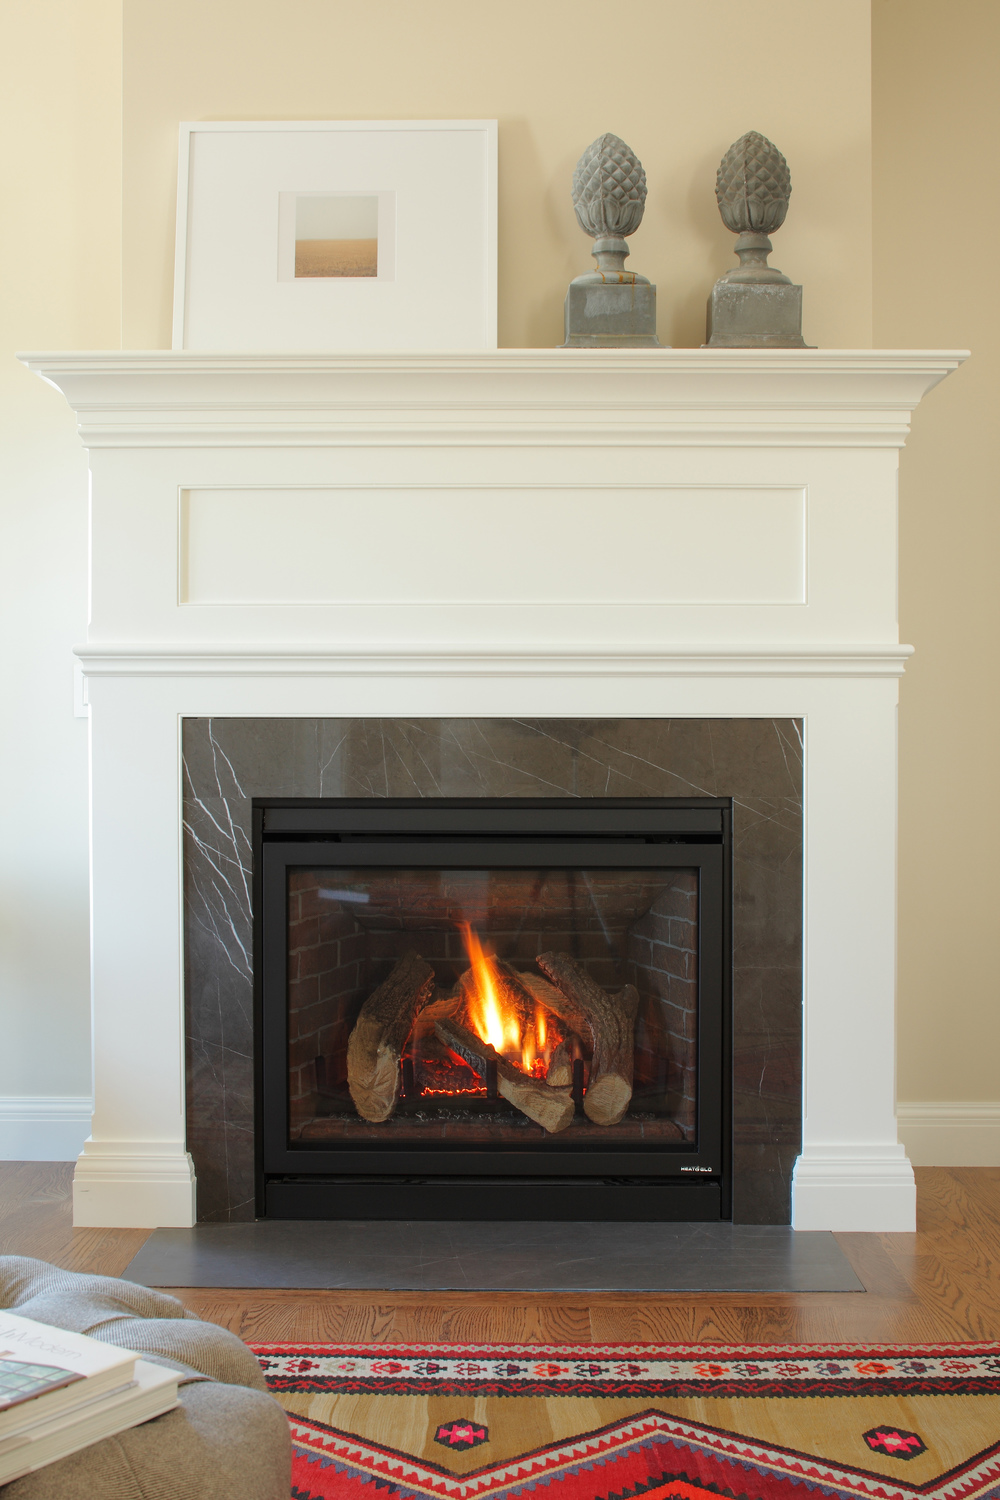 Living_Fireplace_1372.jpg